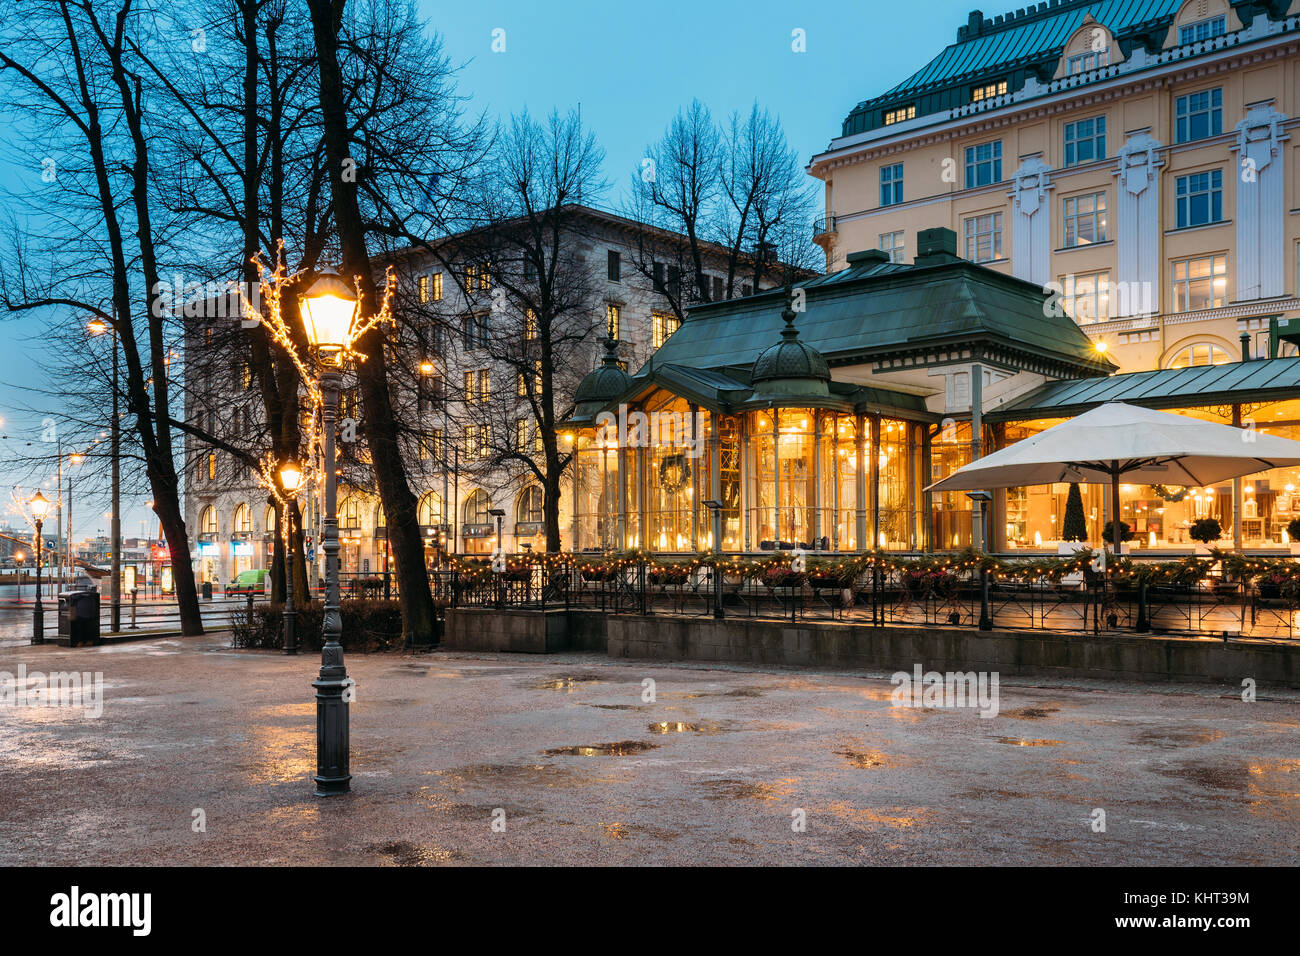 Helsinki Finland Famous And Popular Place Is Cafe Bar Restaurant Stock Photo Alamy